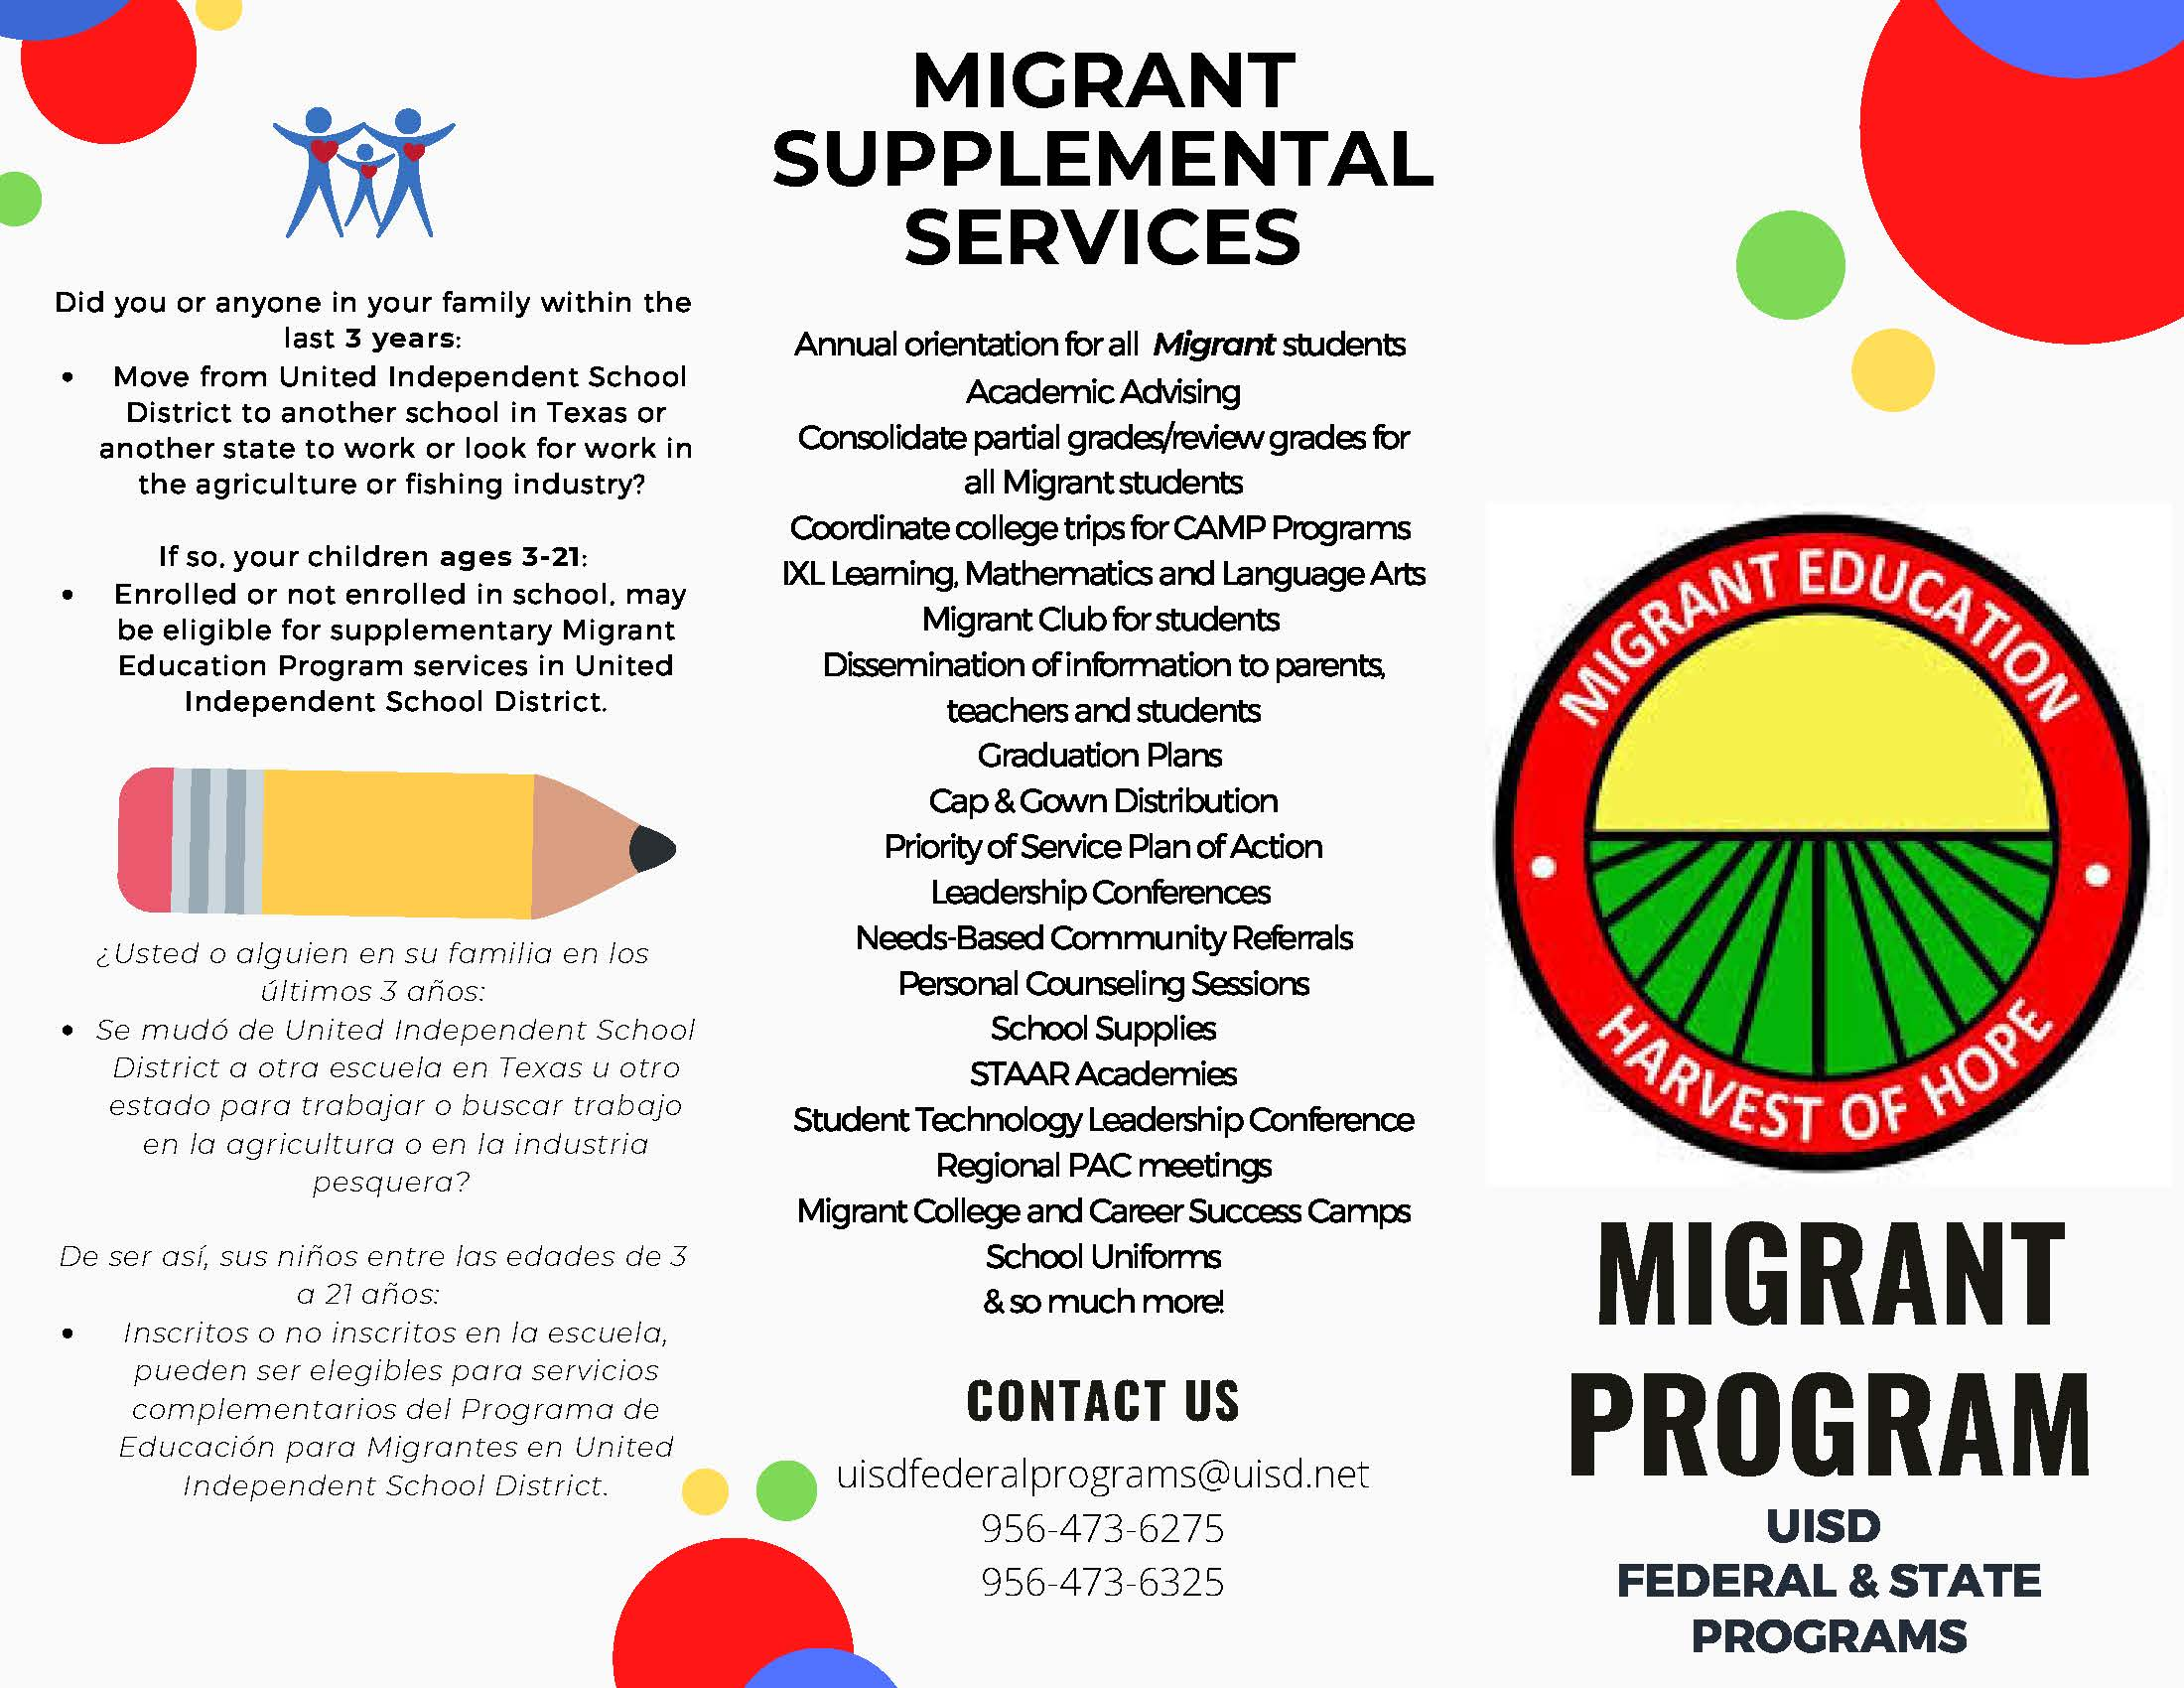 migrant supplemental services